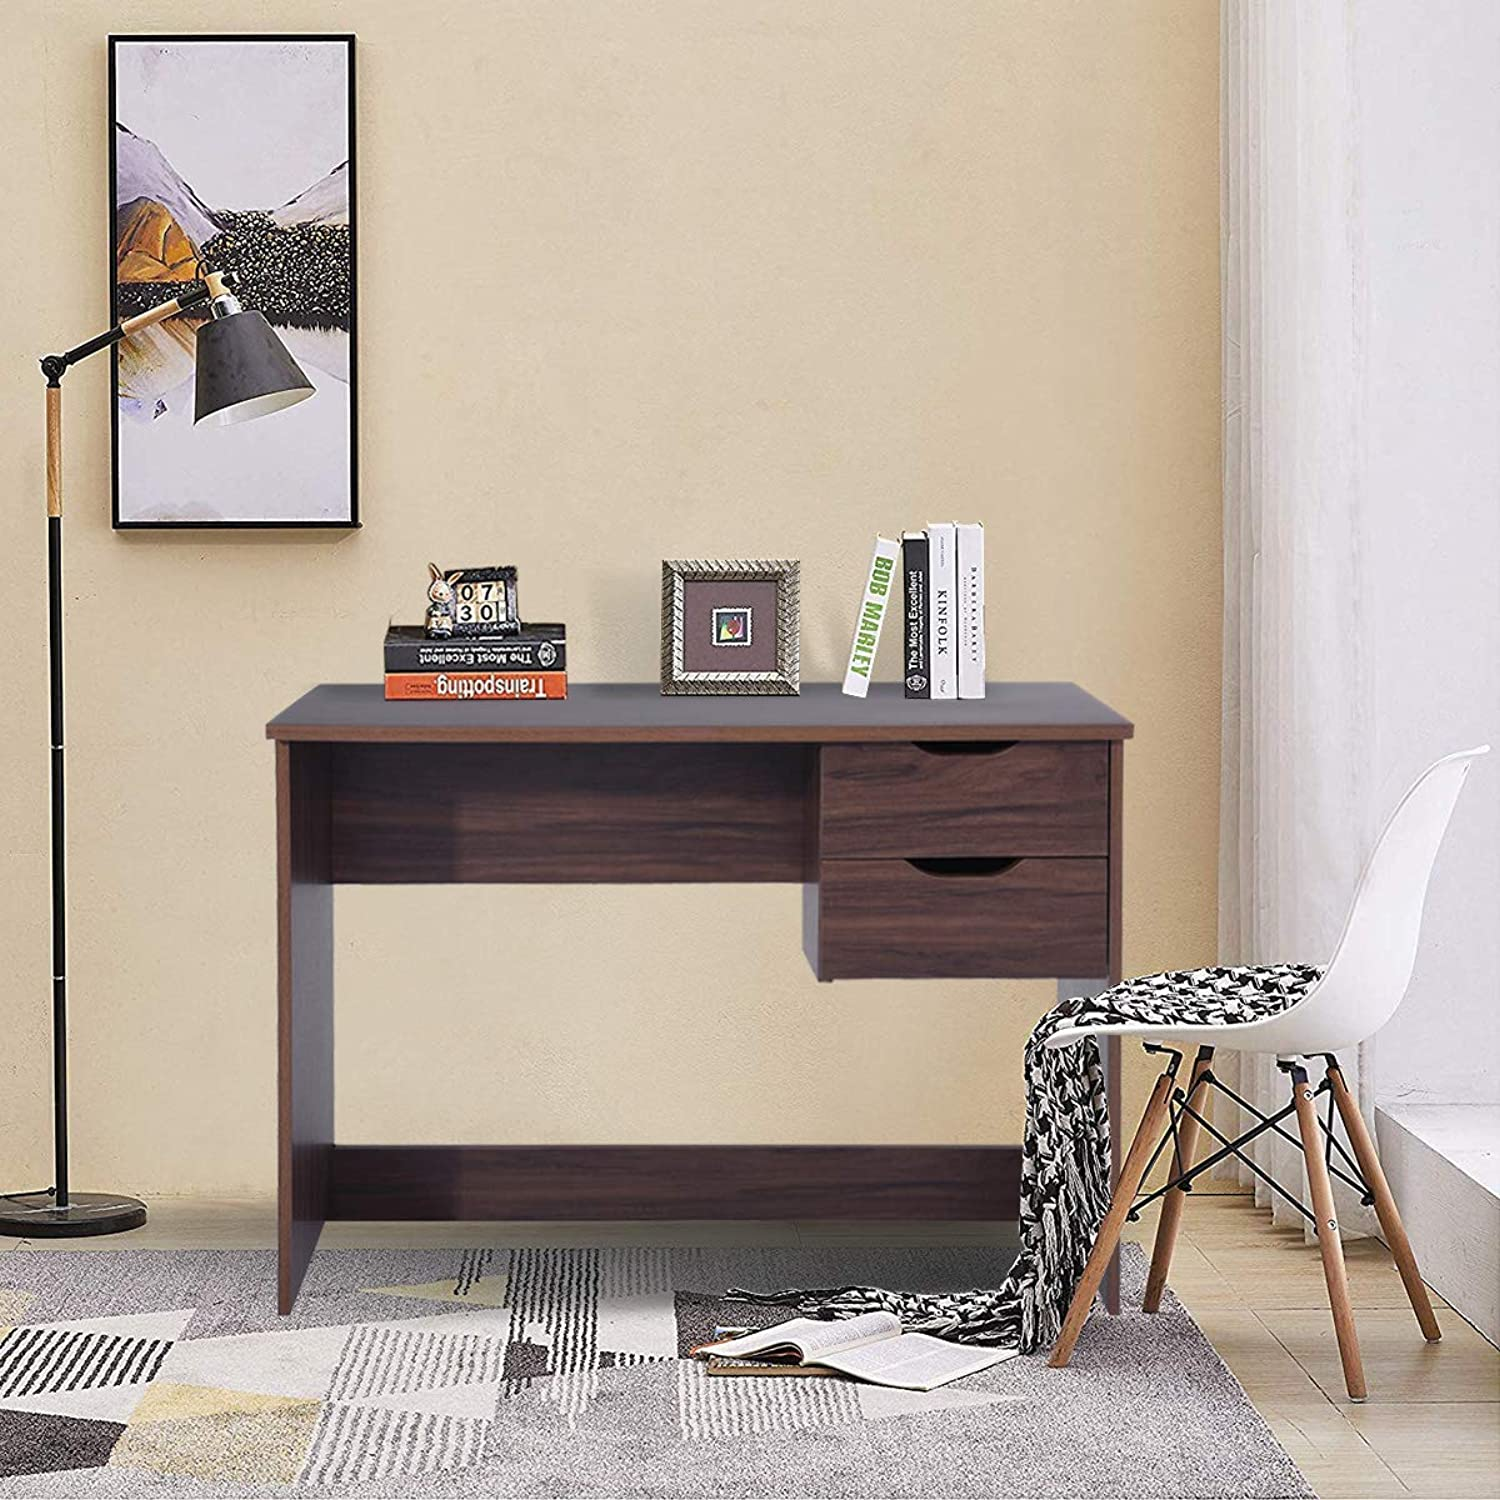 HOMEMAKE Wooden color Computer Desk with 2 Drawer Home Office Writing Table Collection Laptop Desk